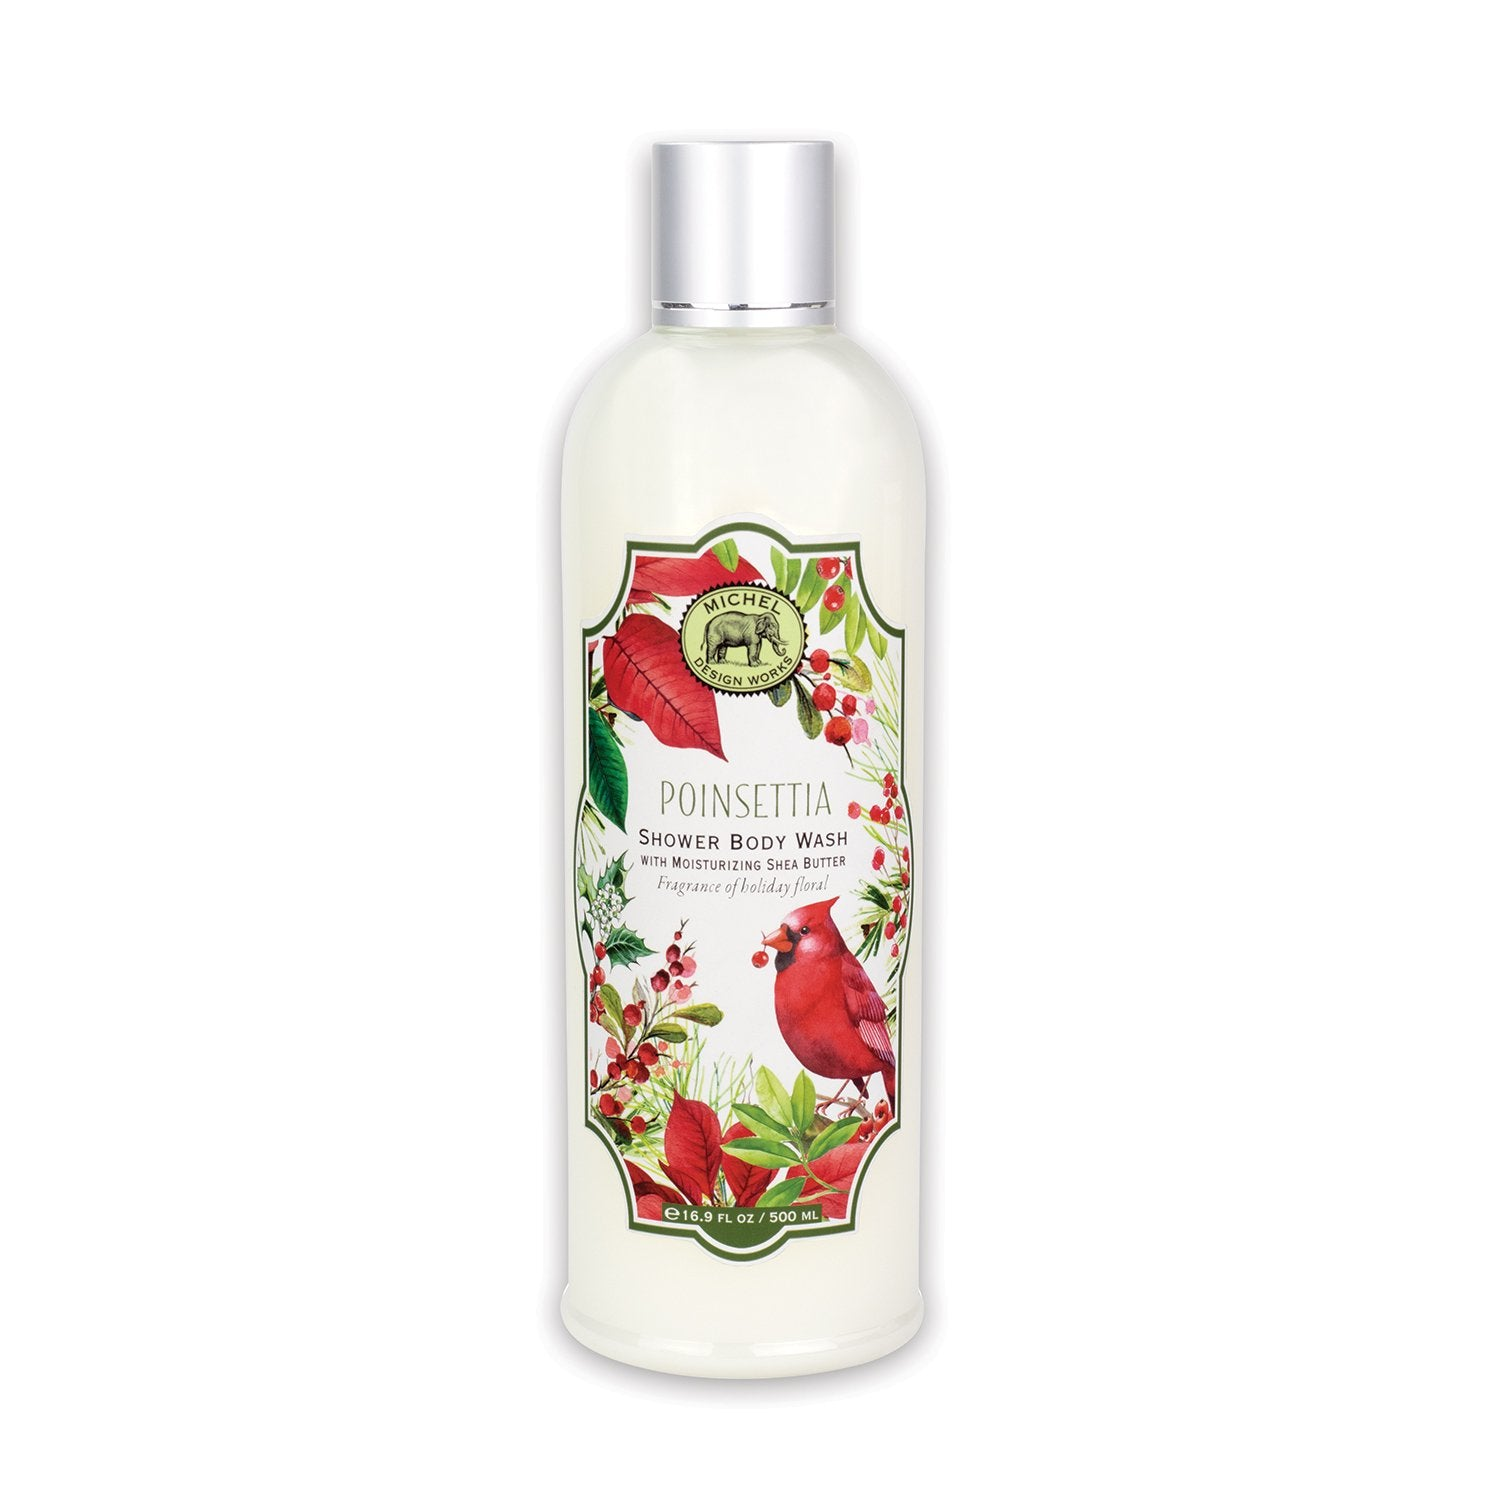 Poinsettia Shower Body Wash